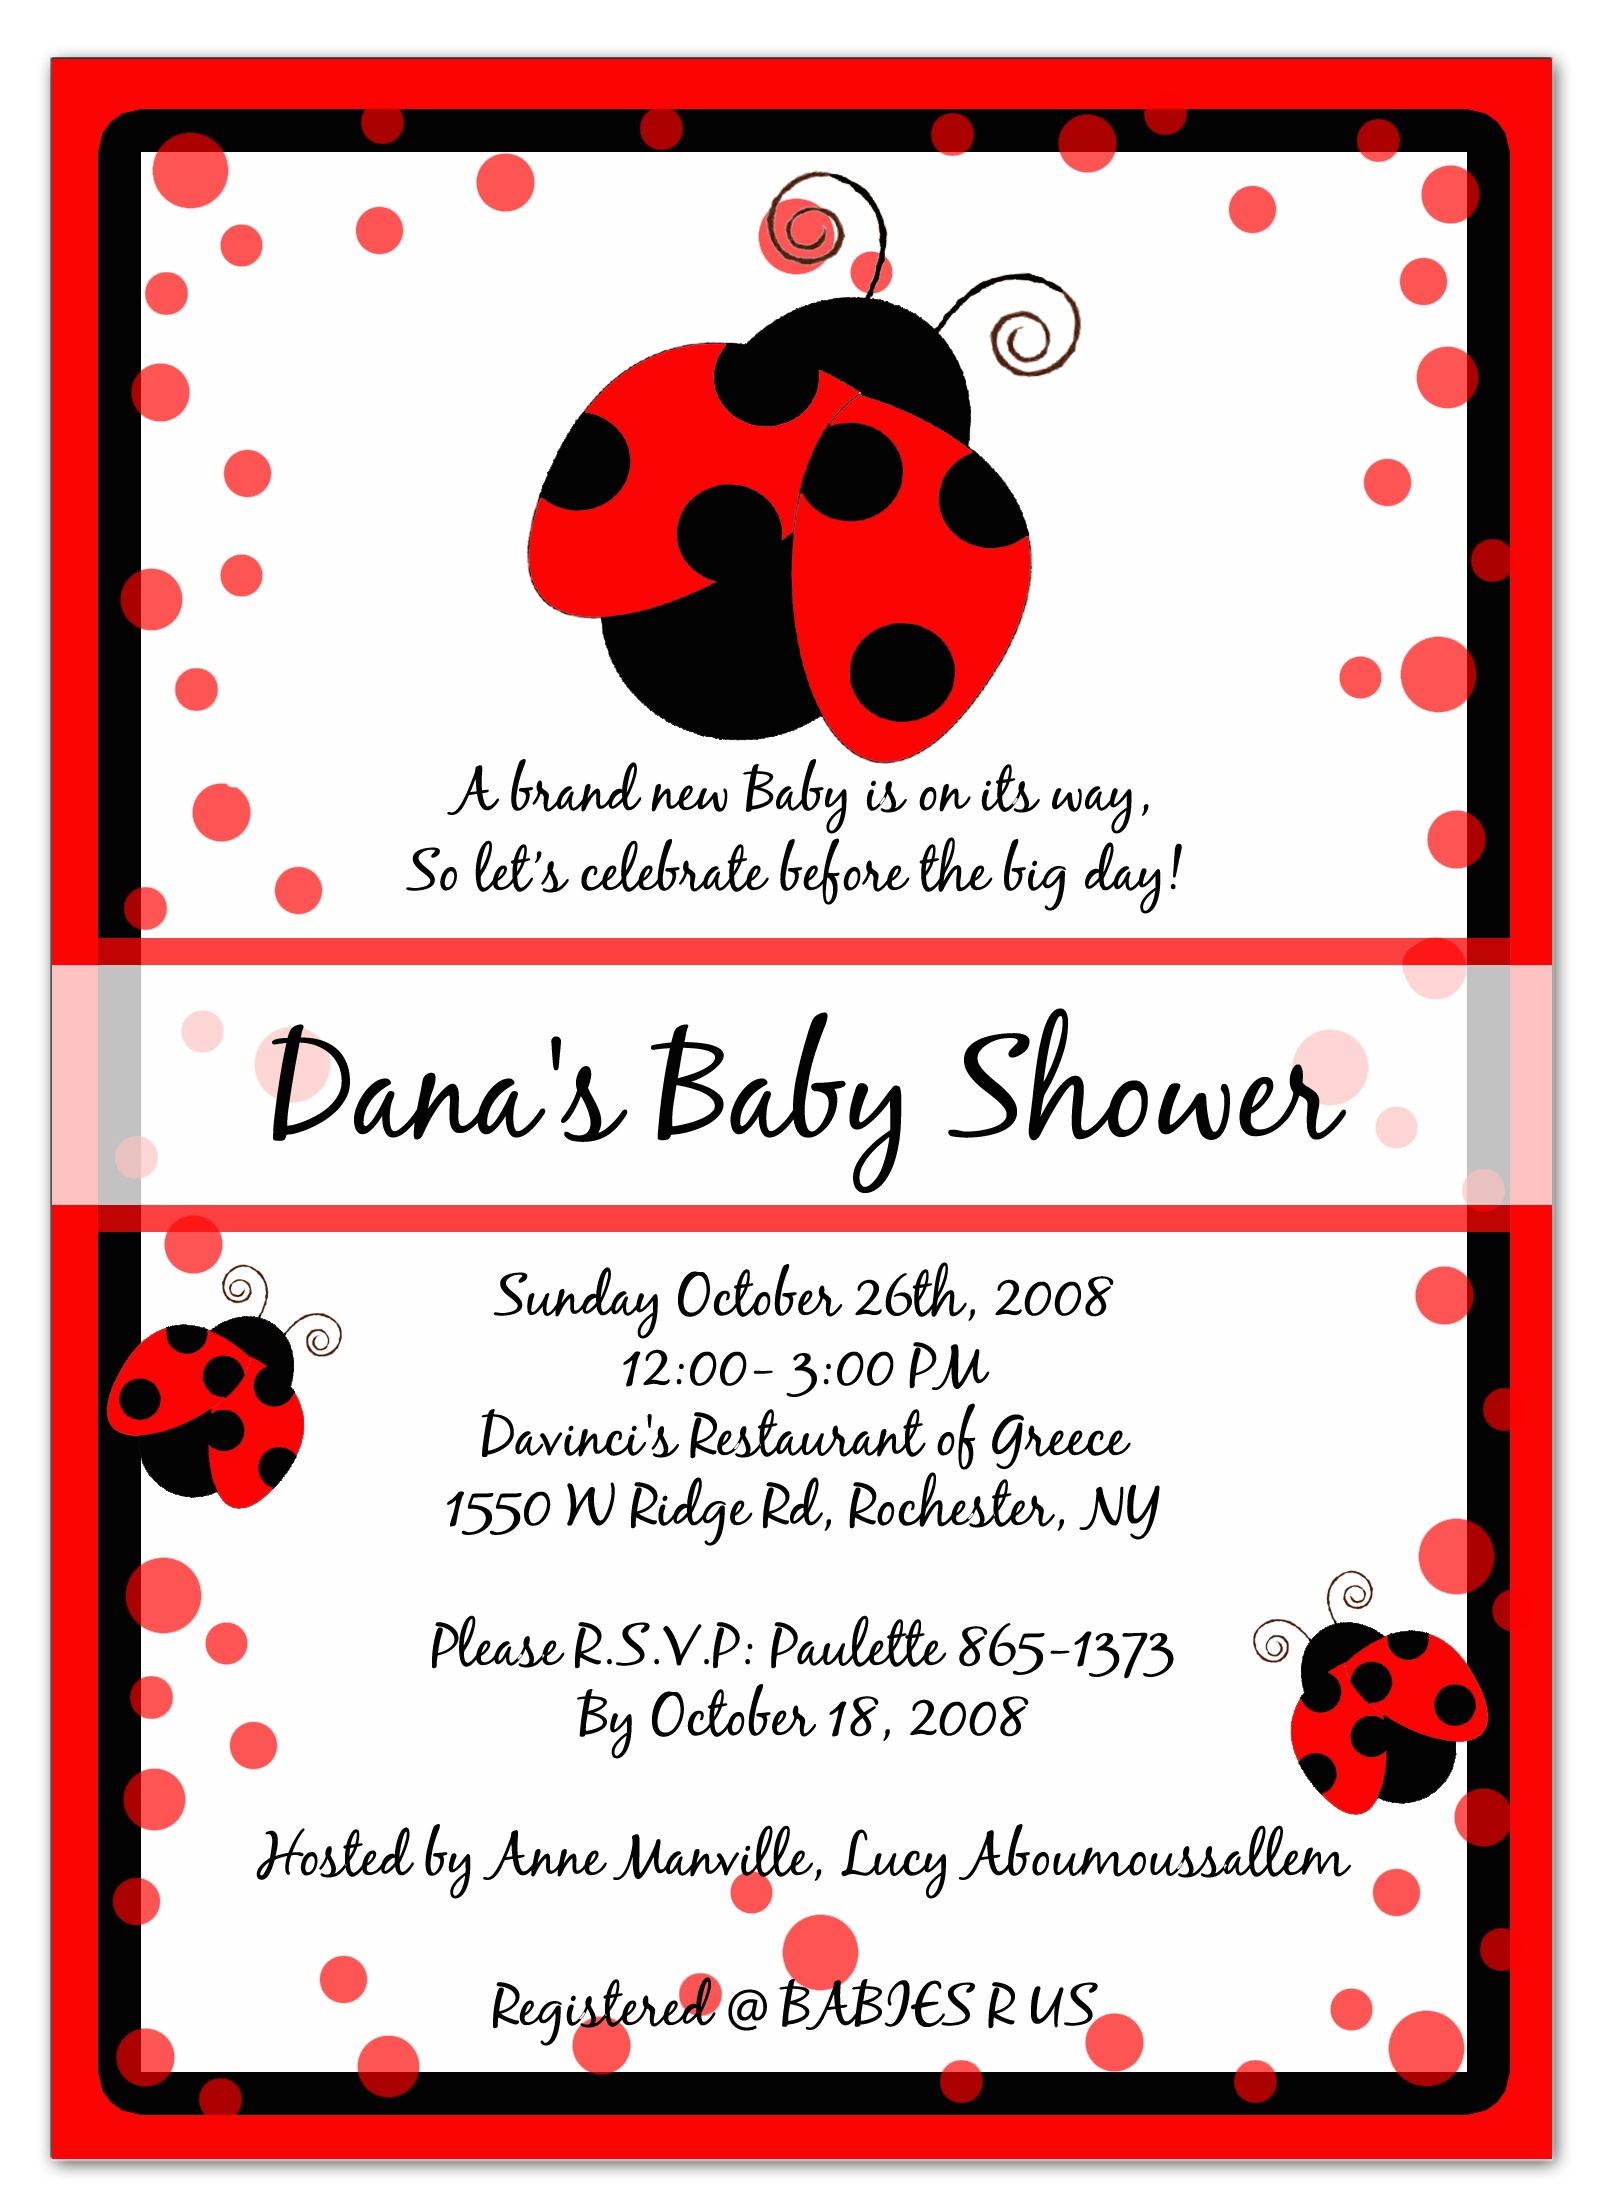 Photo : 12 Baby Shower Ladybug Image - Free Printable Ladybug Baby Shower Invitations Templates